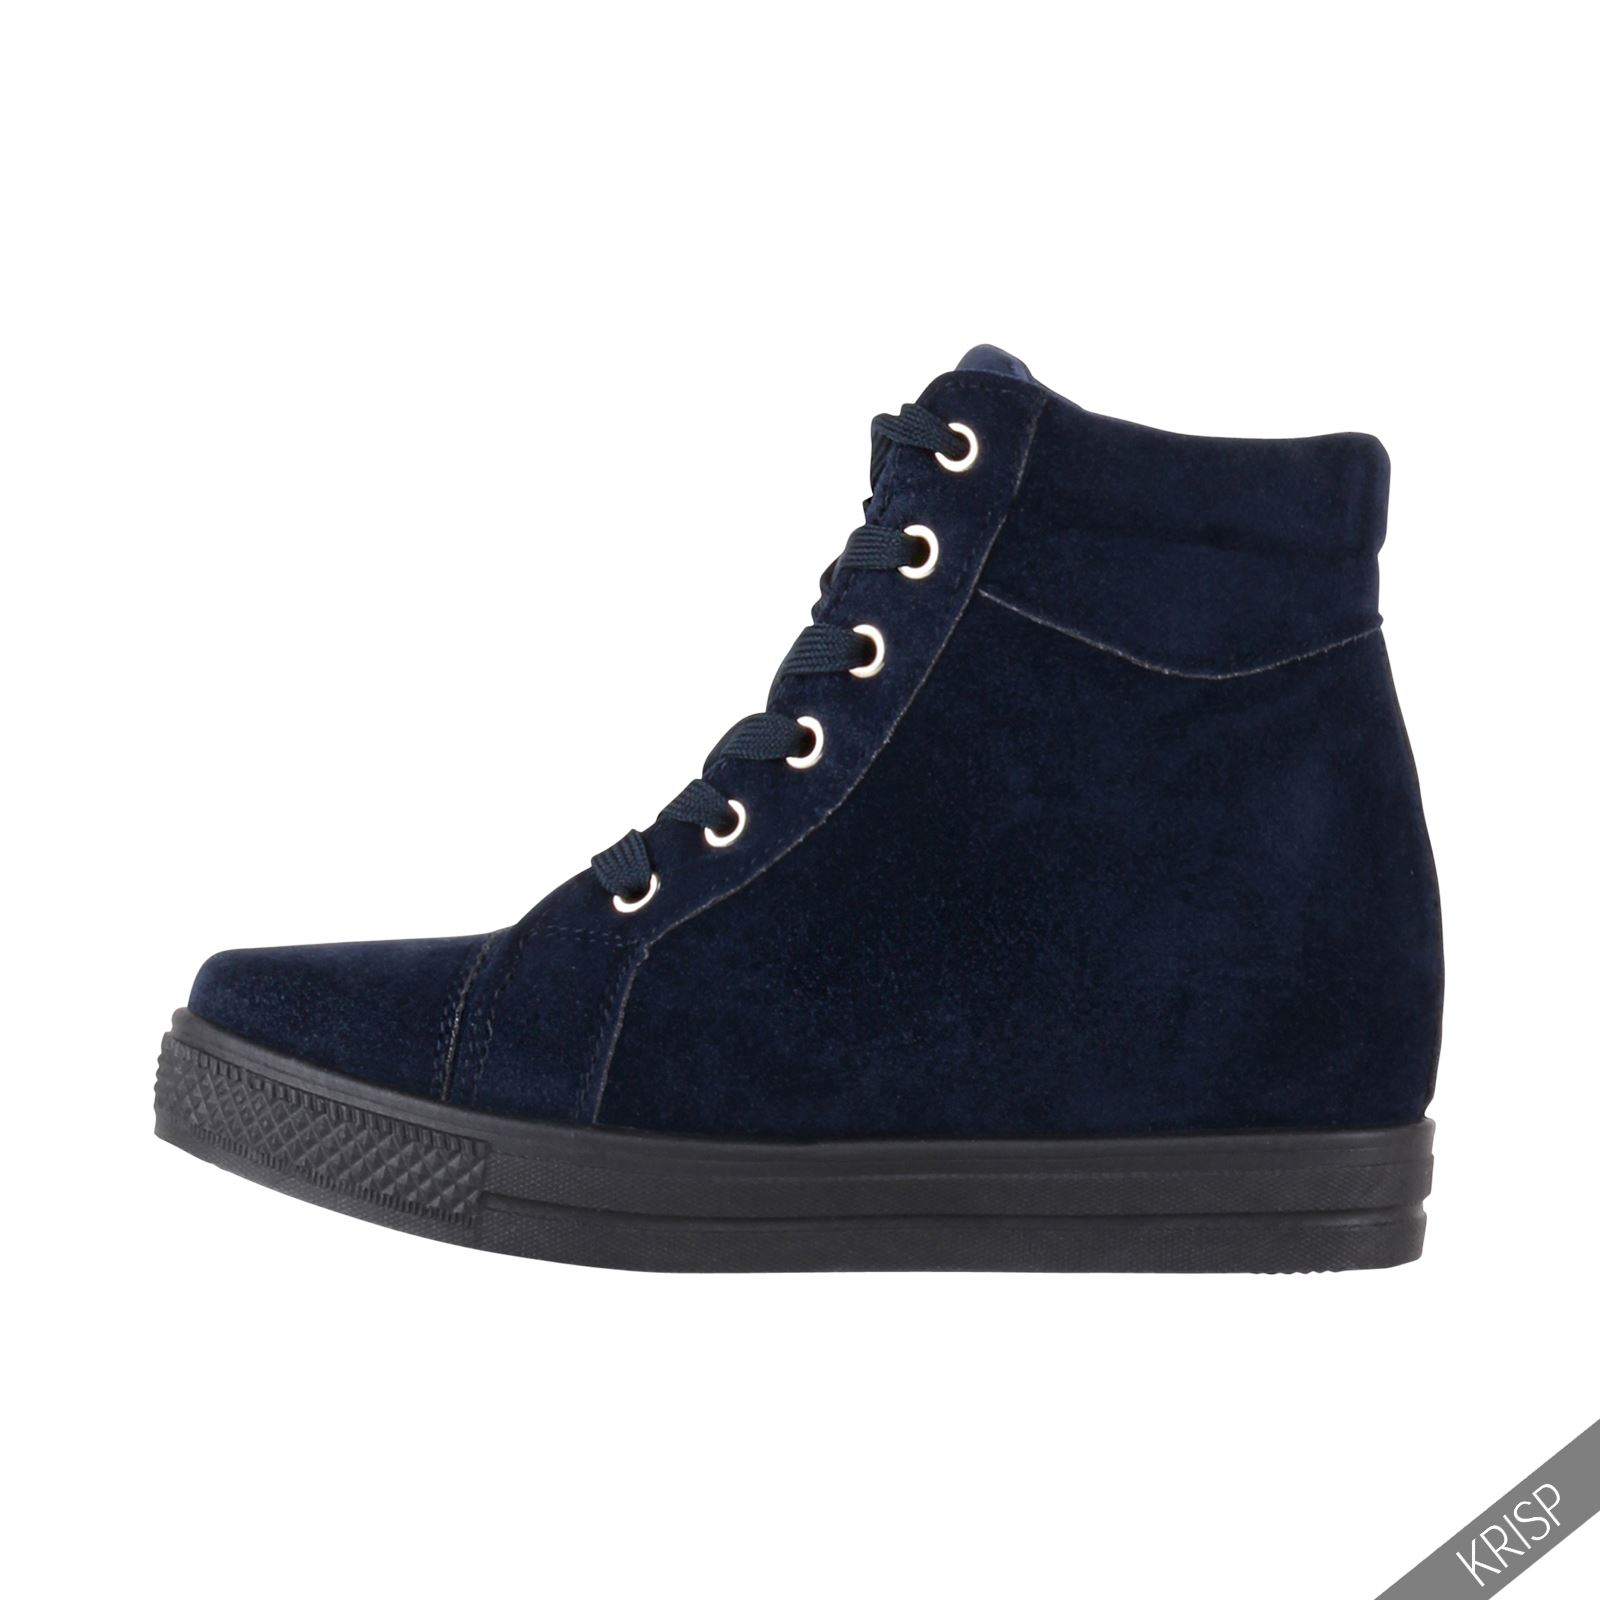 Black Casual Wedge Shoes Trainers